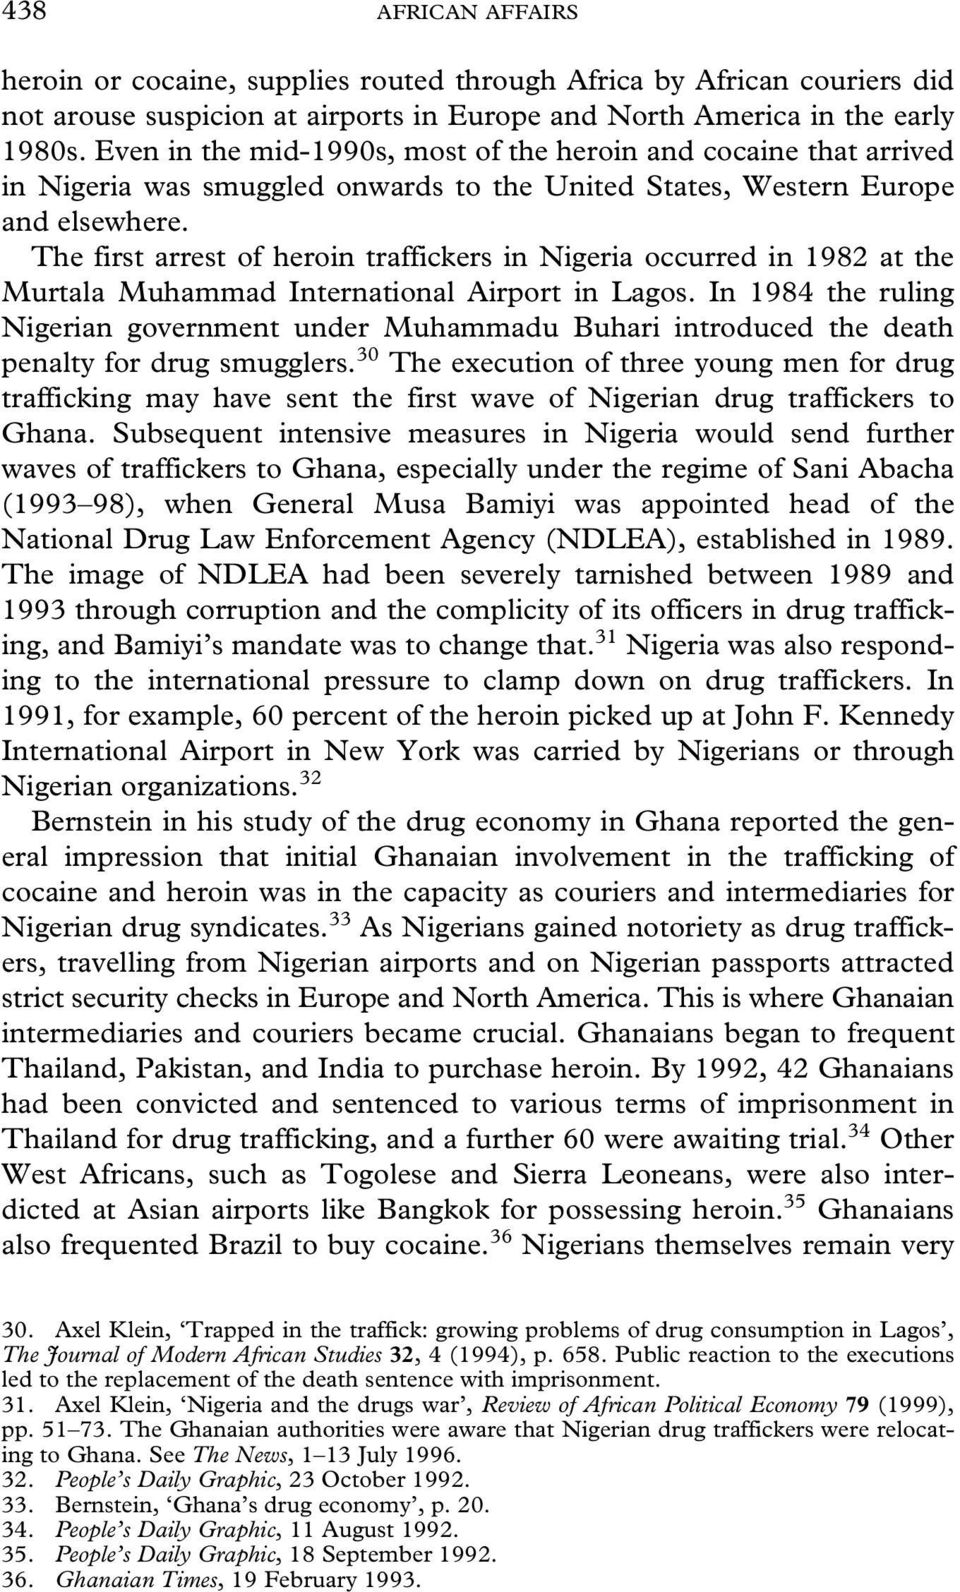 The first arrest of heroin traffickers in Nigeria occurred in 1982 at the Murtala Muhammad International Airport in Lagos.